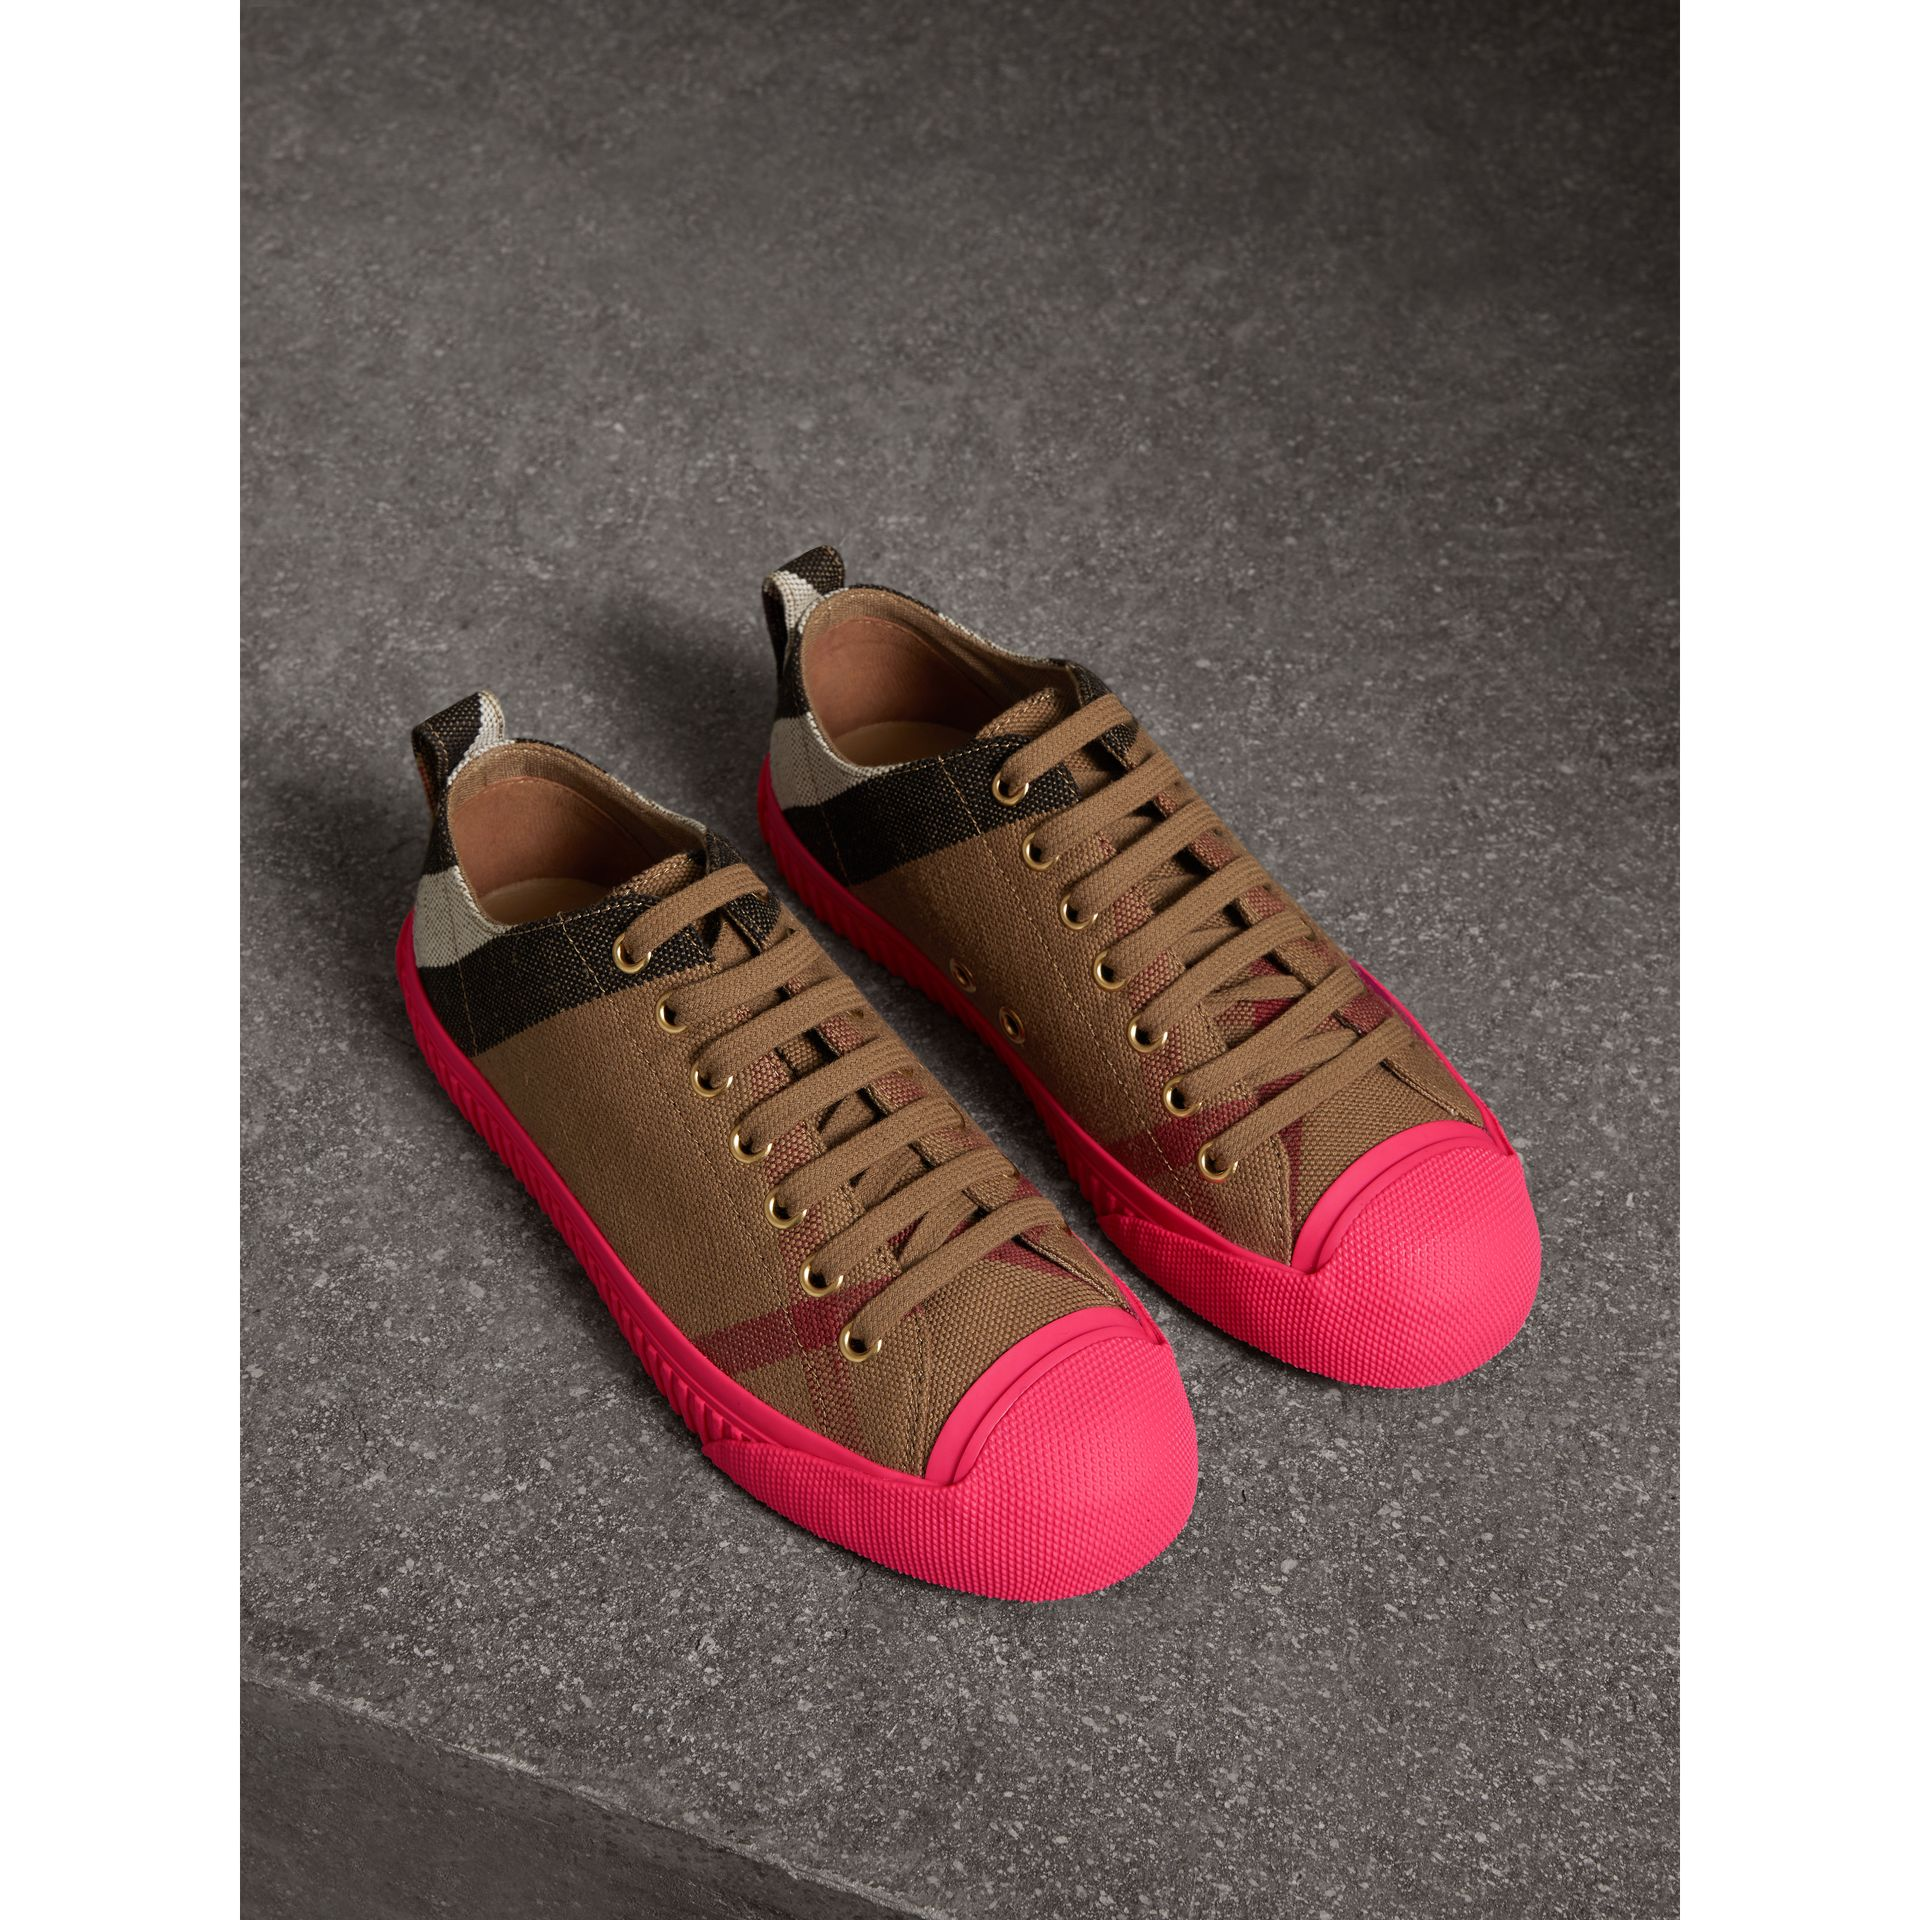 Canvas Check and Leather Trainers in Classic - Women | Burberry United Kingdom - gallery image 1